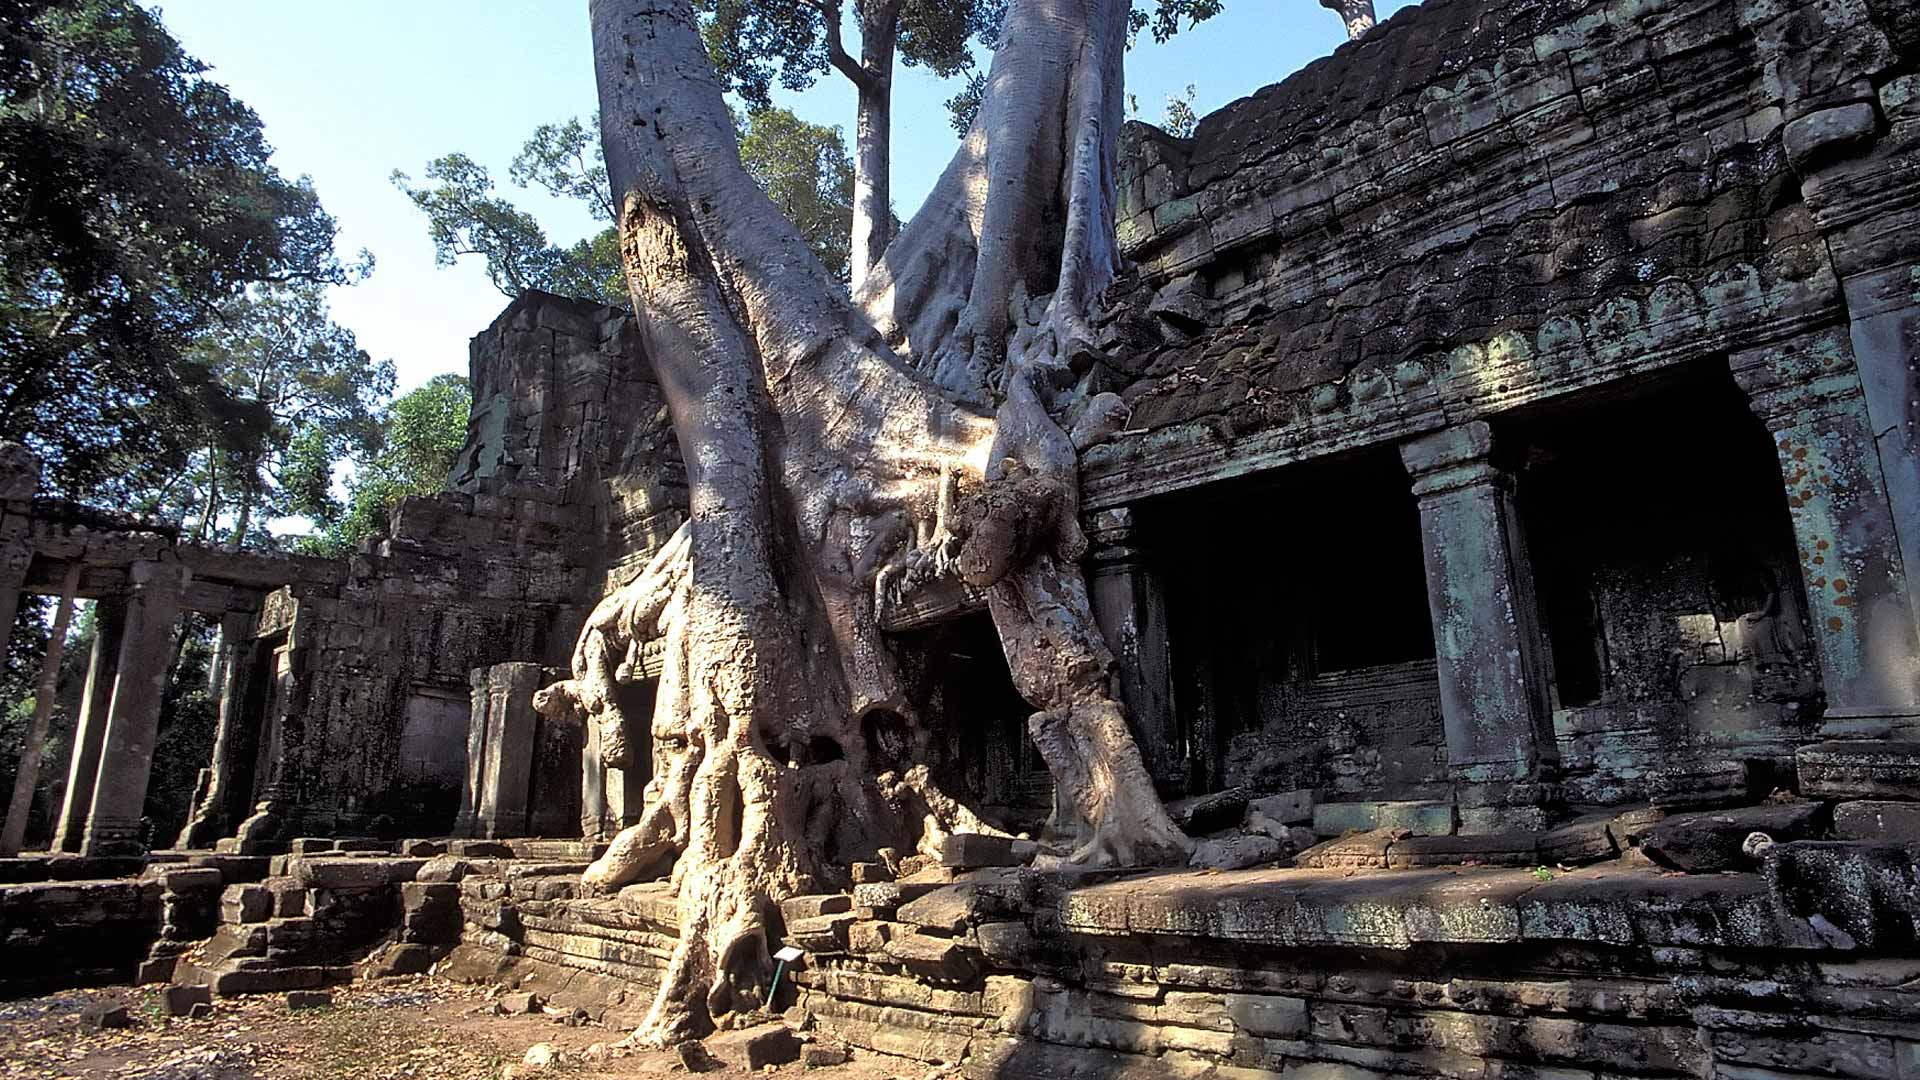 Silk cotton tree (Ceiba pentadra) growing over the Western Entrance of Preah Khan, Angkor, Siem Reap, Cambodia